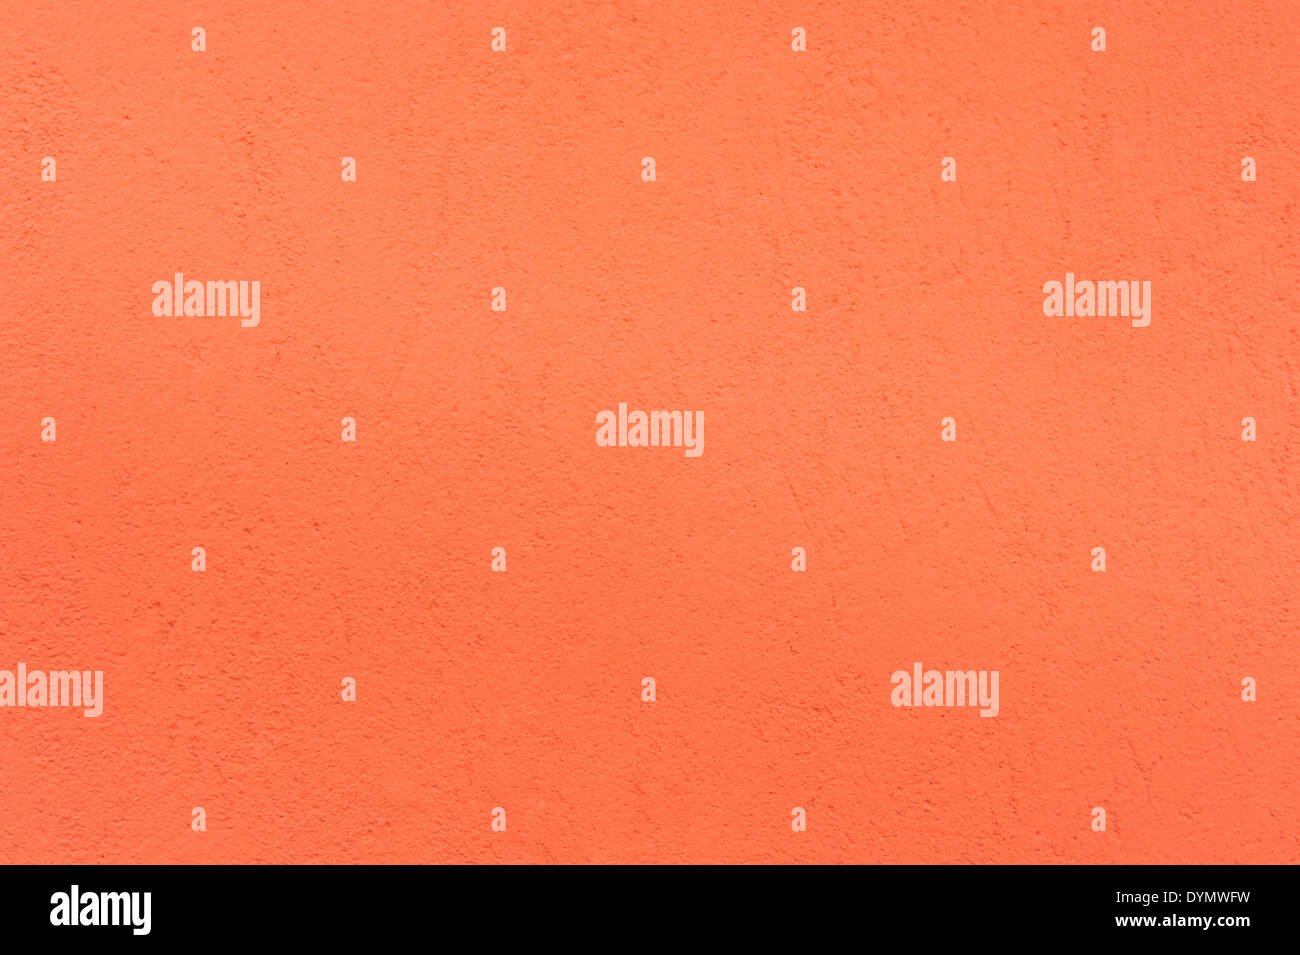 Painted Concrete Texture Stock Photos Painted Concrete Texture